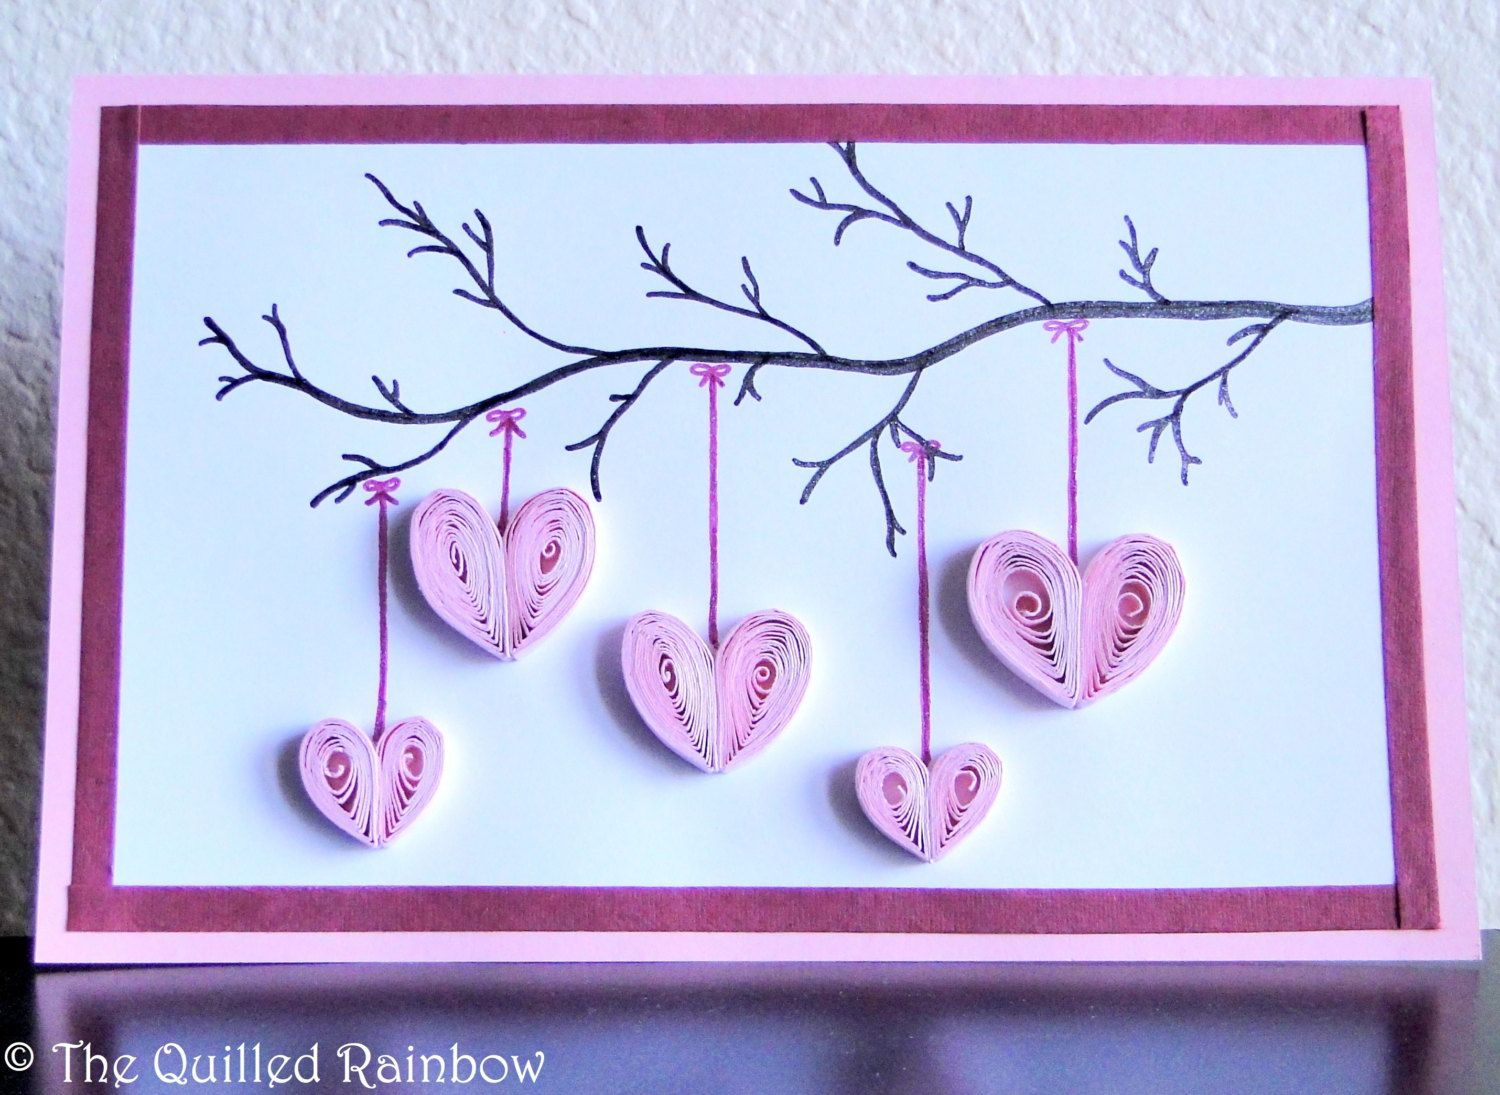 Quilled hanging hearts handmade hearts hanging from a branch quilled hanging hearts handmade hearts hanging from a branch valentine card mothers day bookmarktalkfo Image collections